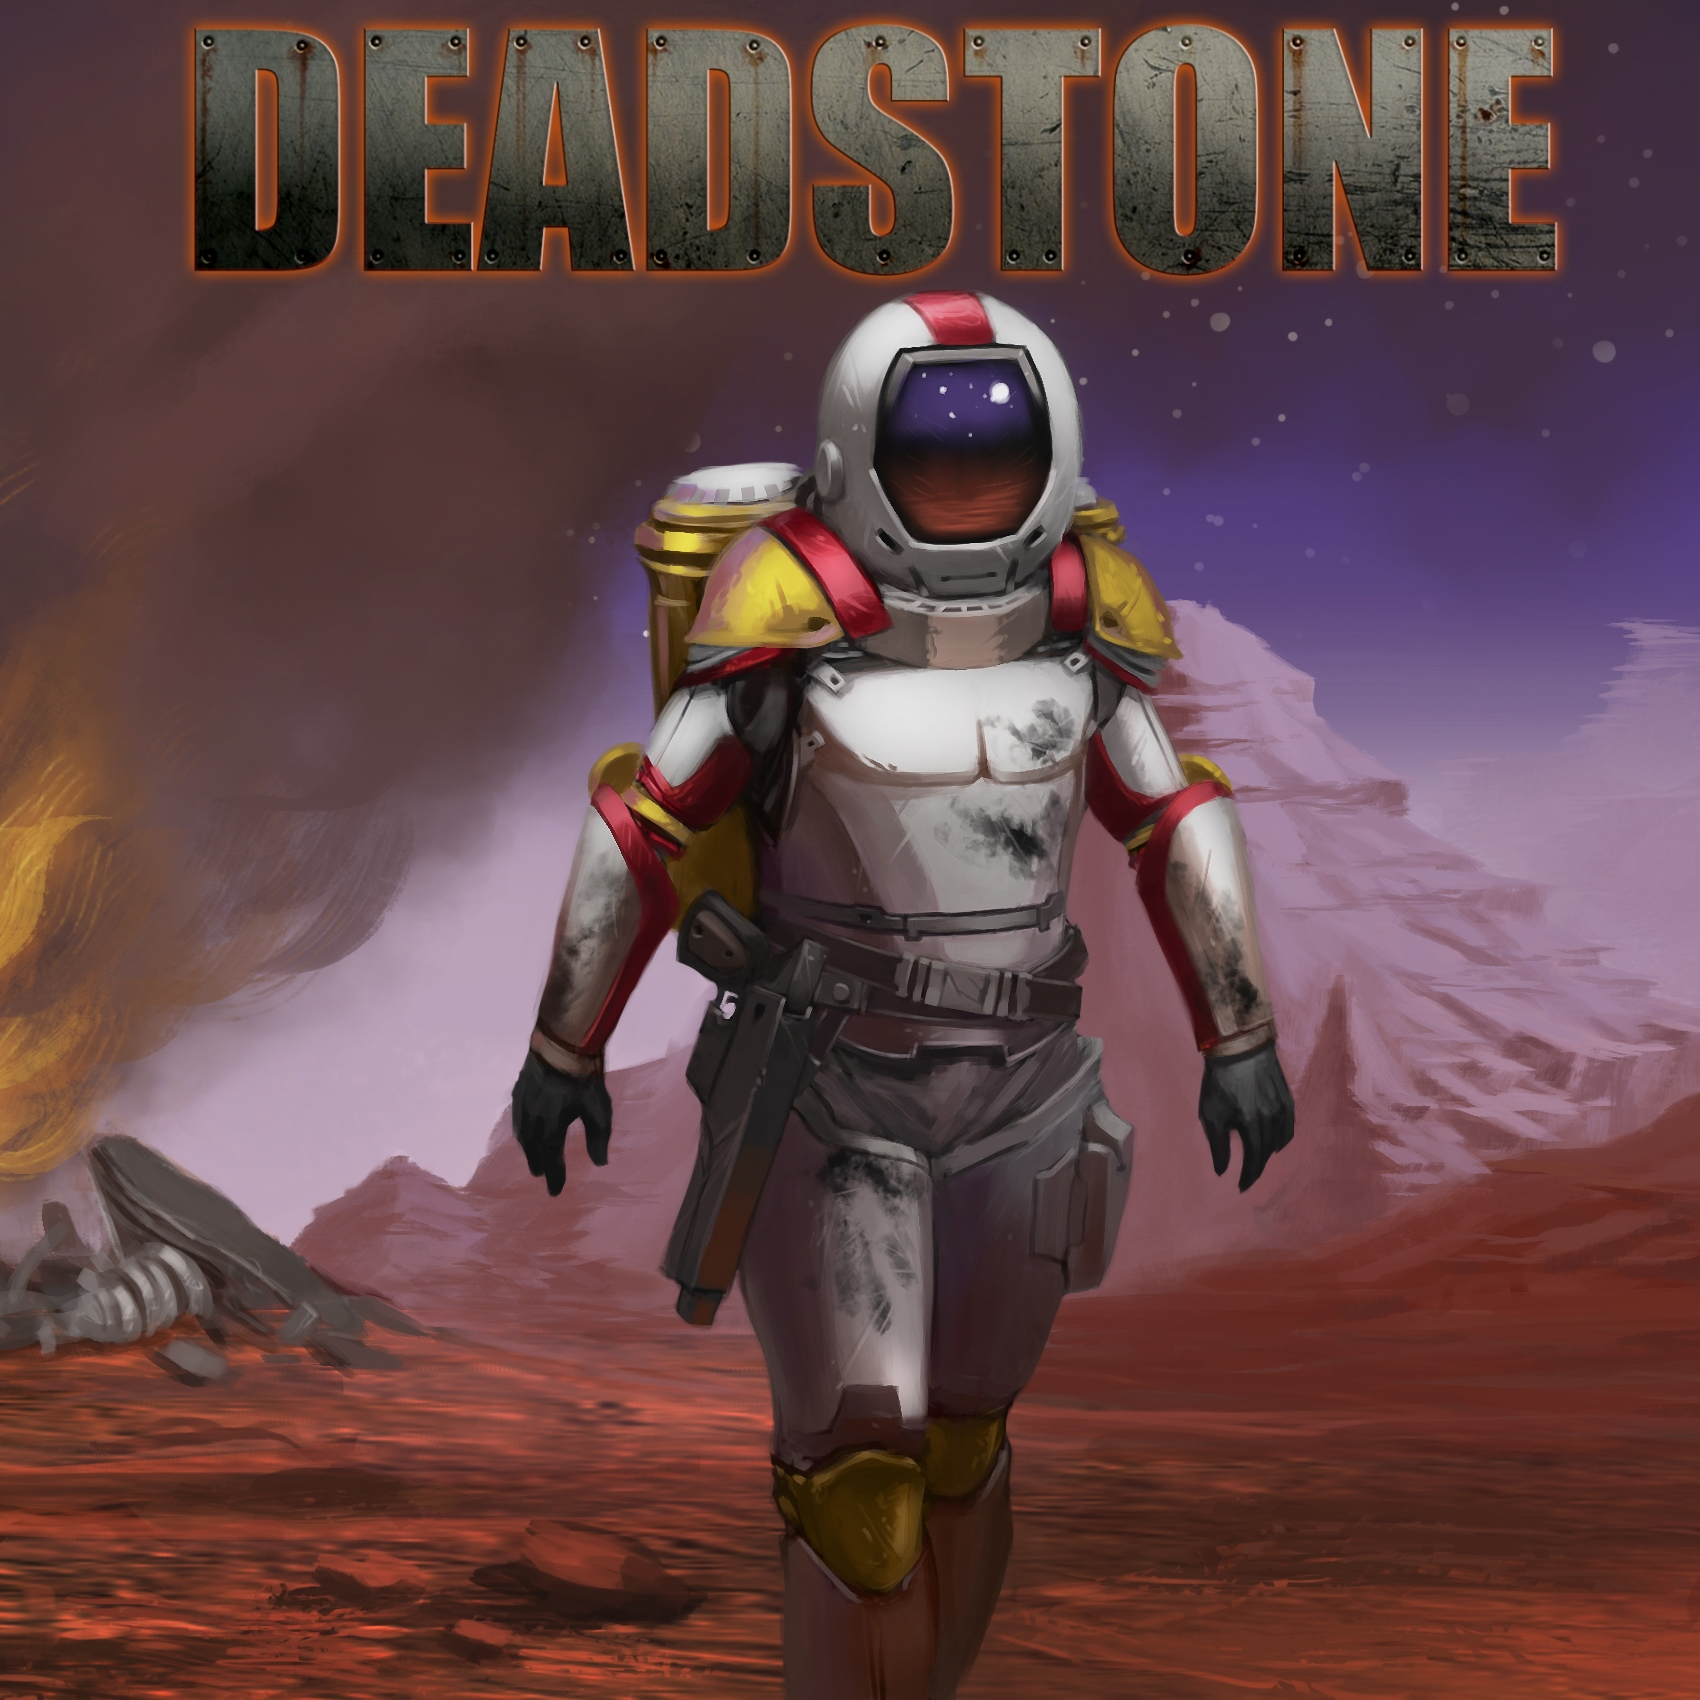 Review Of The Day: Deadstone